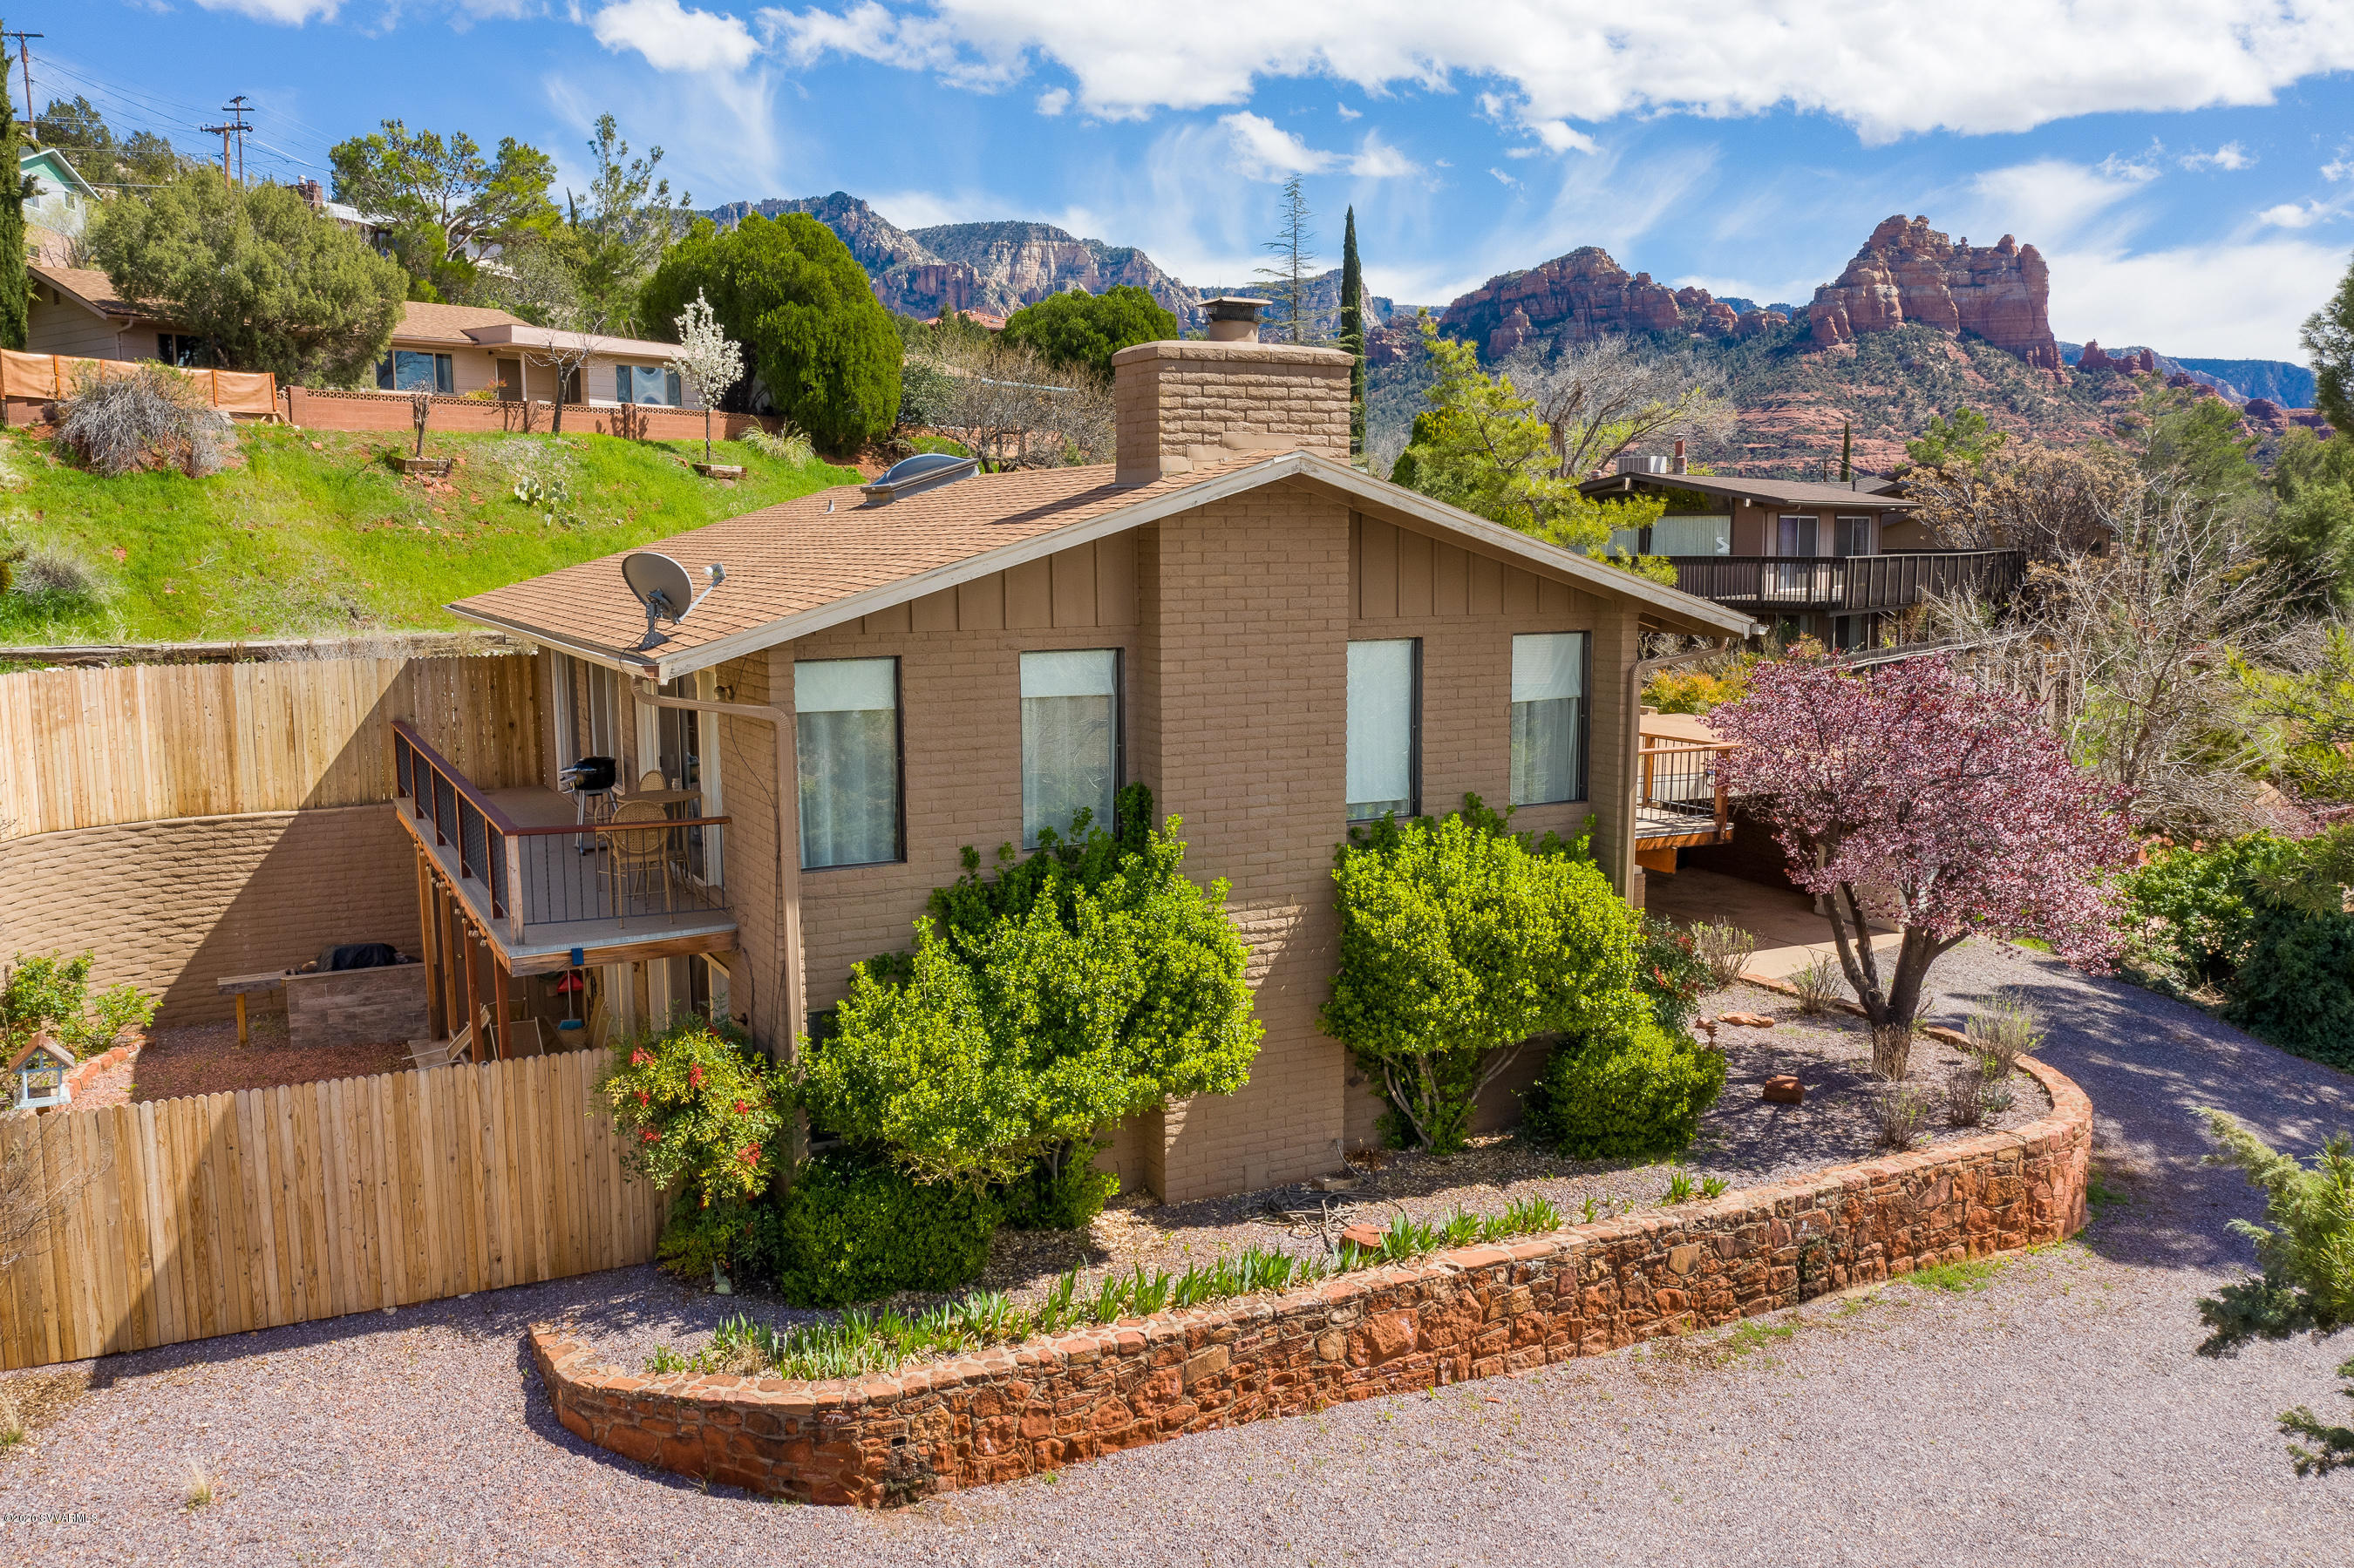 530 Sunset Lane Sedona, AZ 86336